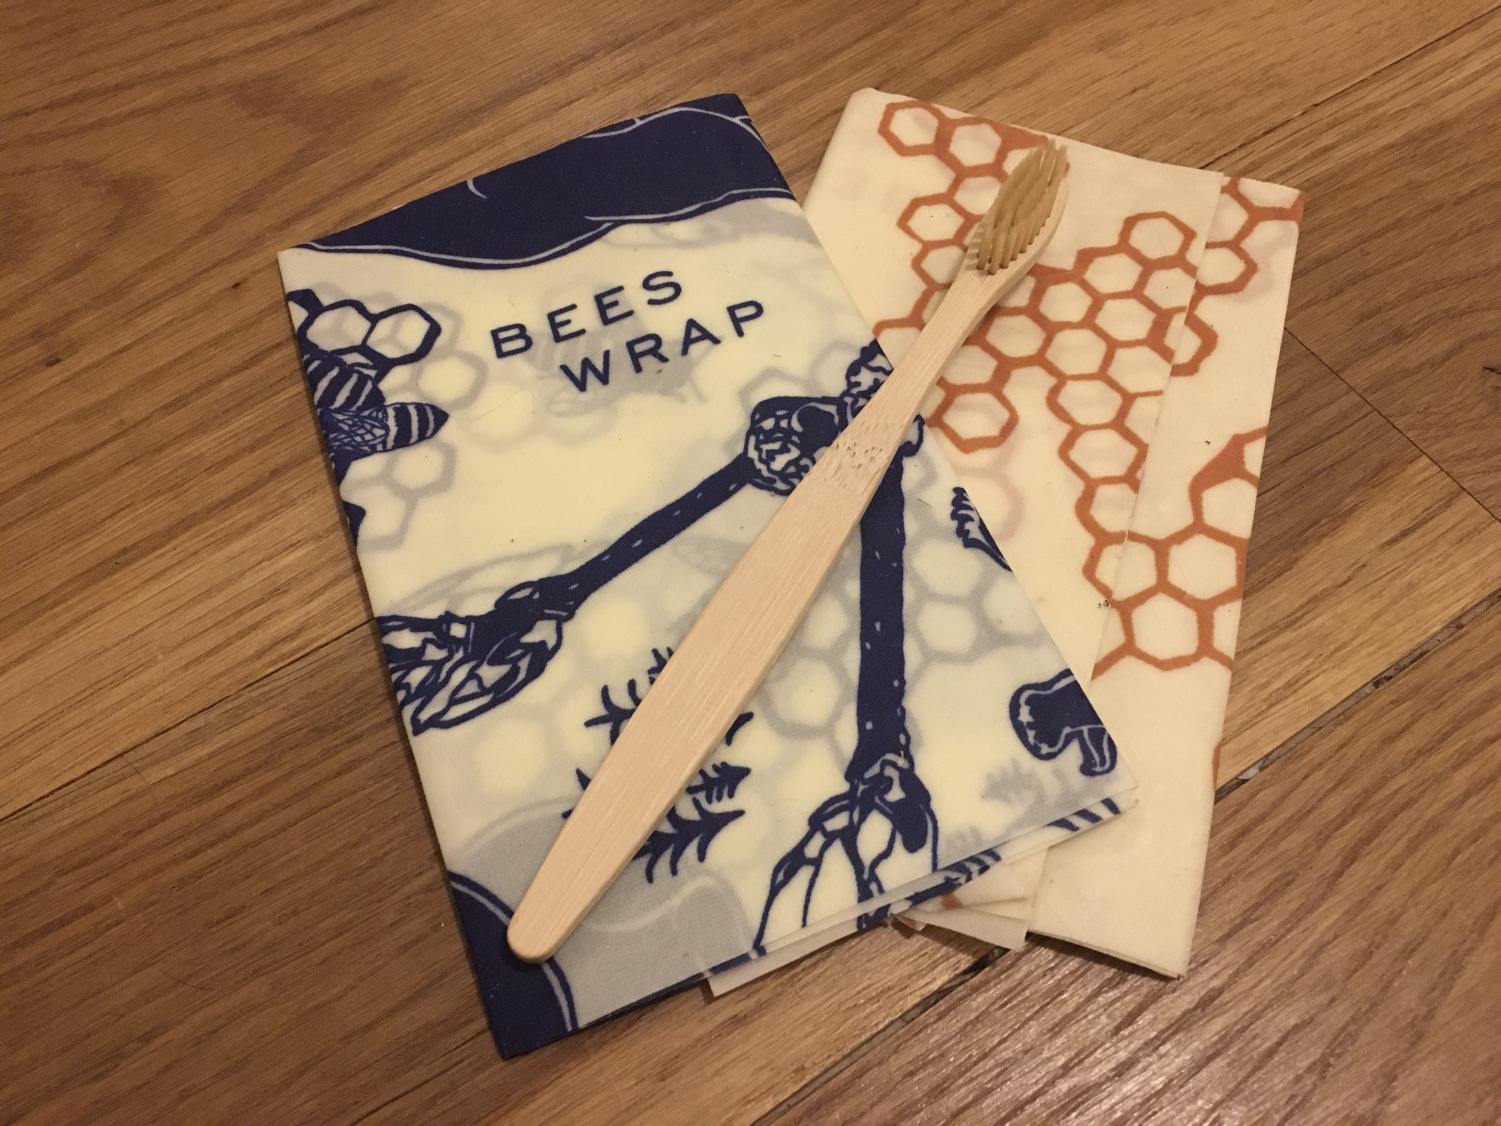 Beeswax wrap and bamboo toothbrushes are sustainable, environmental-friendly products that help reduce plastic consumption.